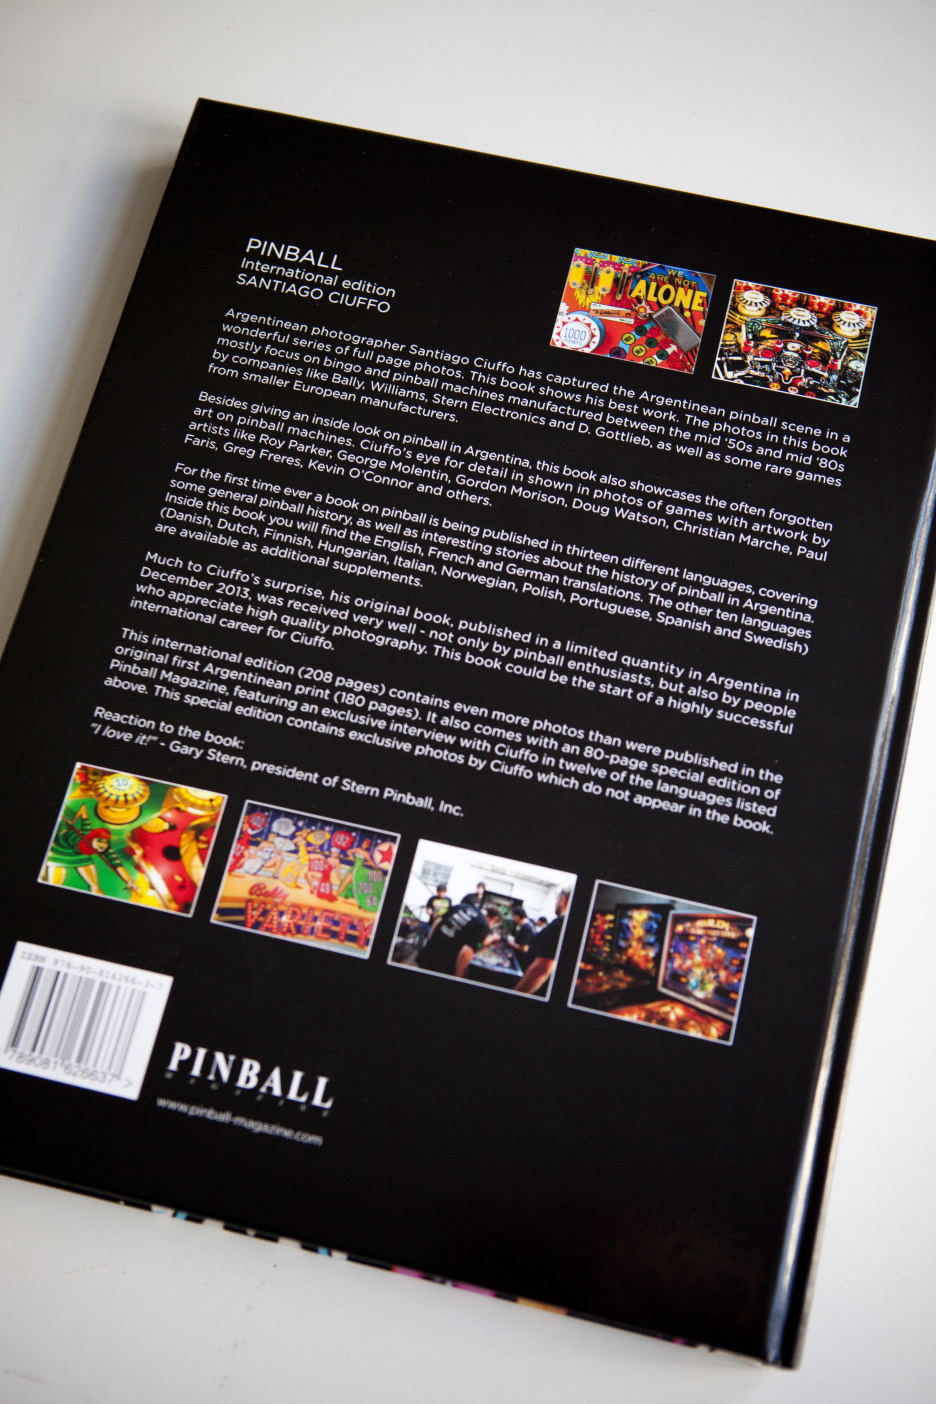 Pinball Magazine Apart Fro The Mentioned Solutions You Can Always Design A Circuit That As Earlier Got Rights To Publish International Edition Of Beautiful Photo Book By Argentinean Photographer